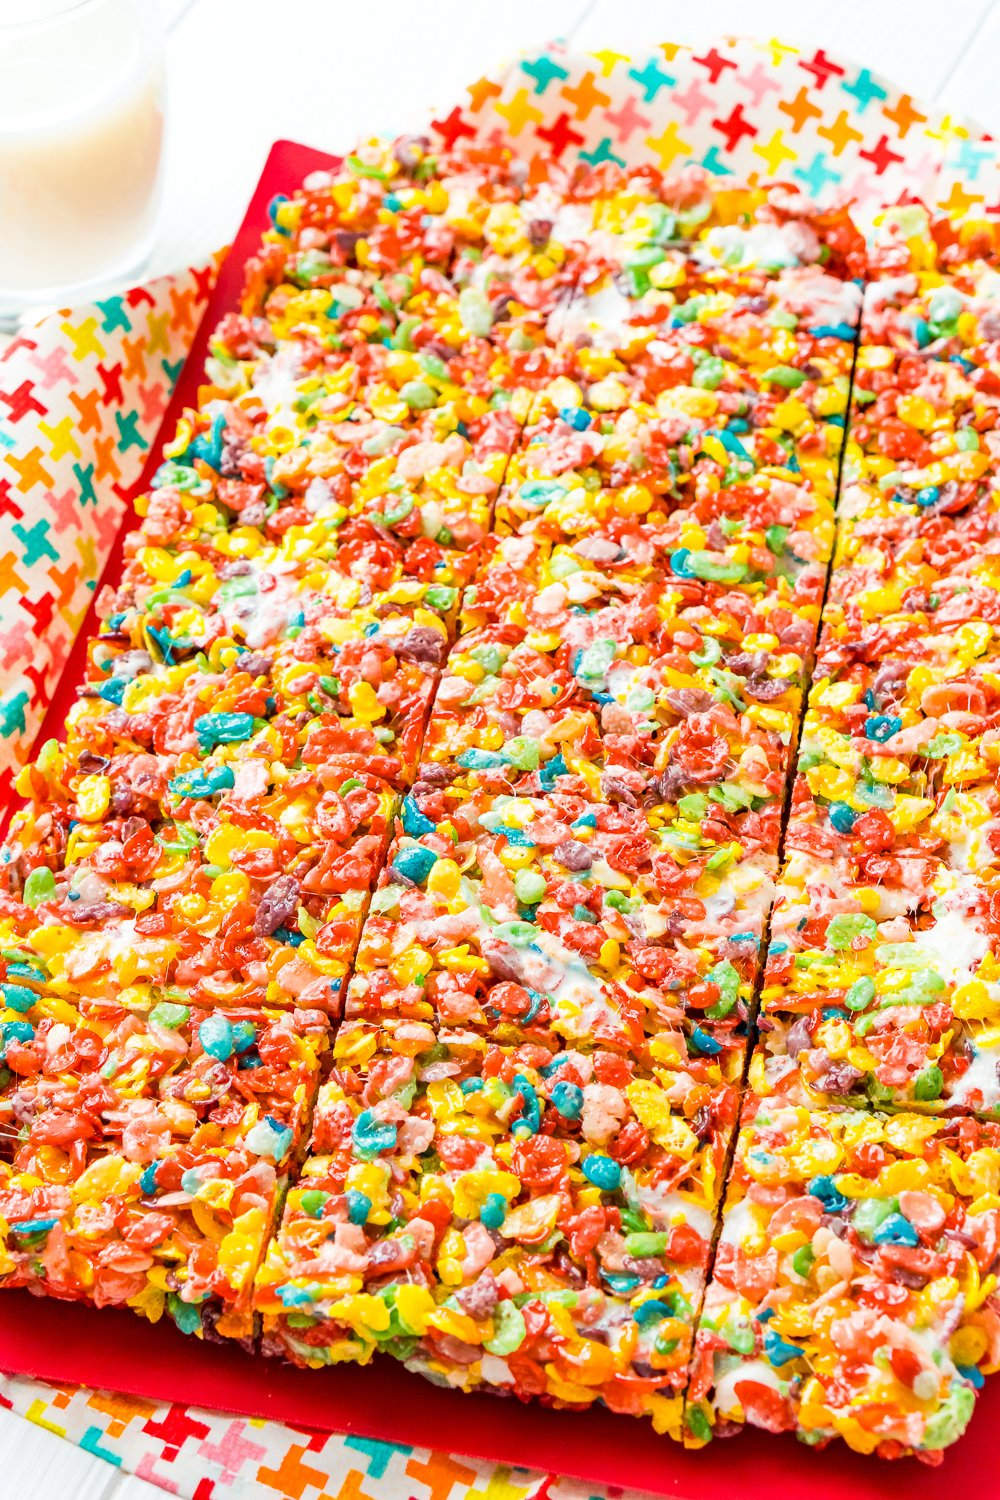 A sheet of fruity pebbles treats on a red cutting board. The treats have been cut but not pulled apart.